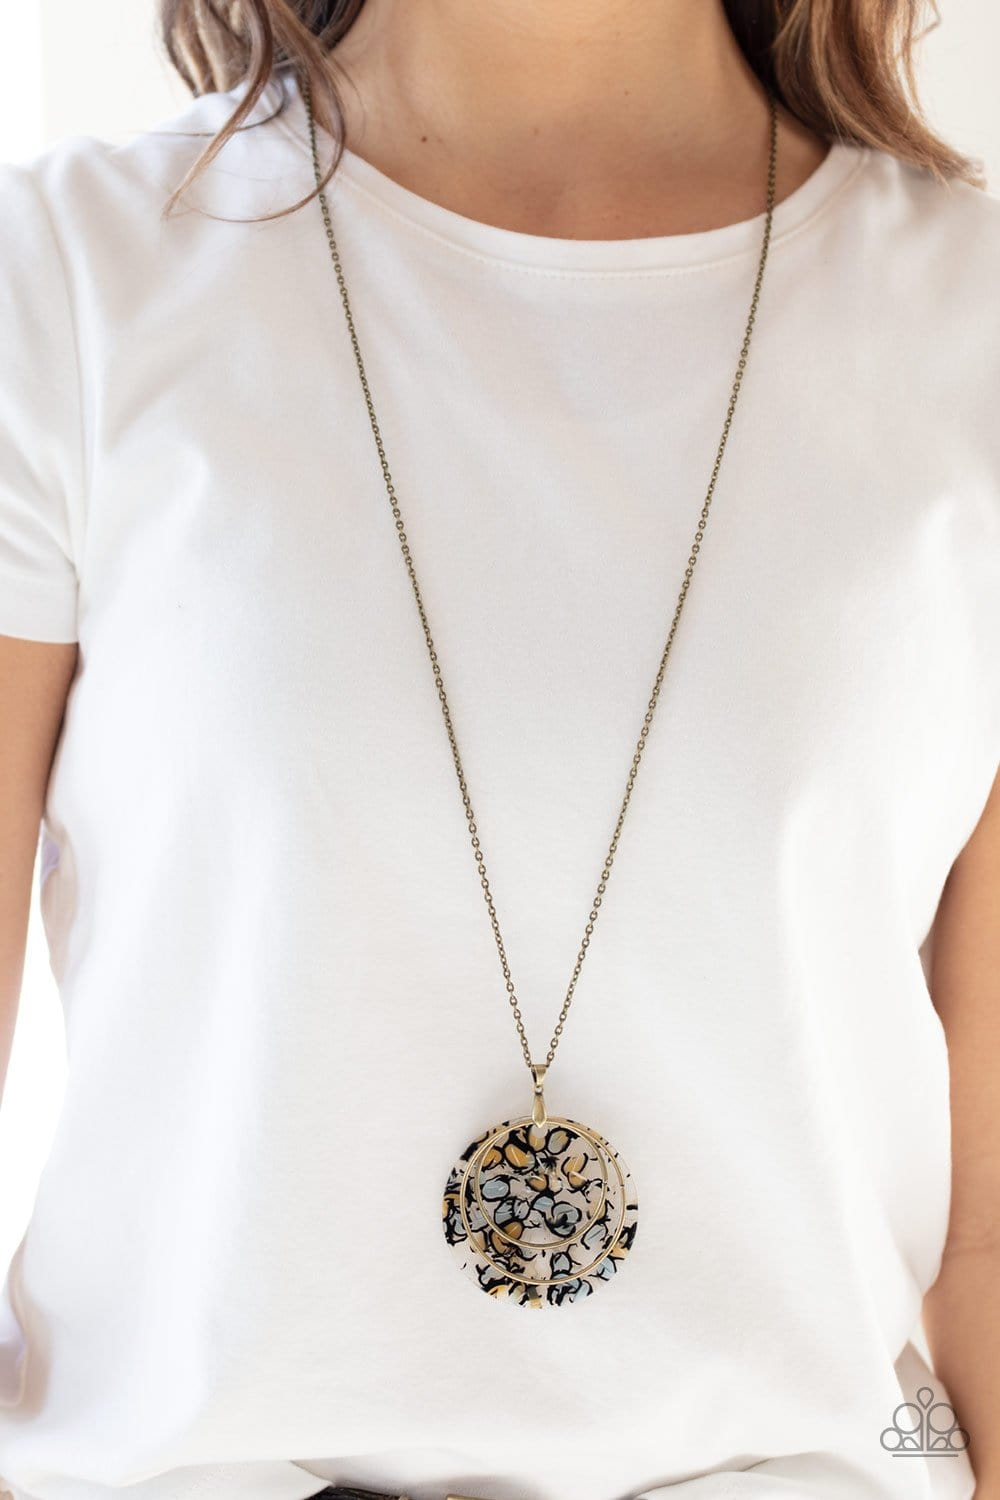 Paparazzi: Metro Mosaic - Brass Necklace - Jewels N' Thingz Boutique